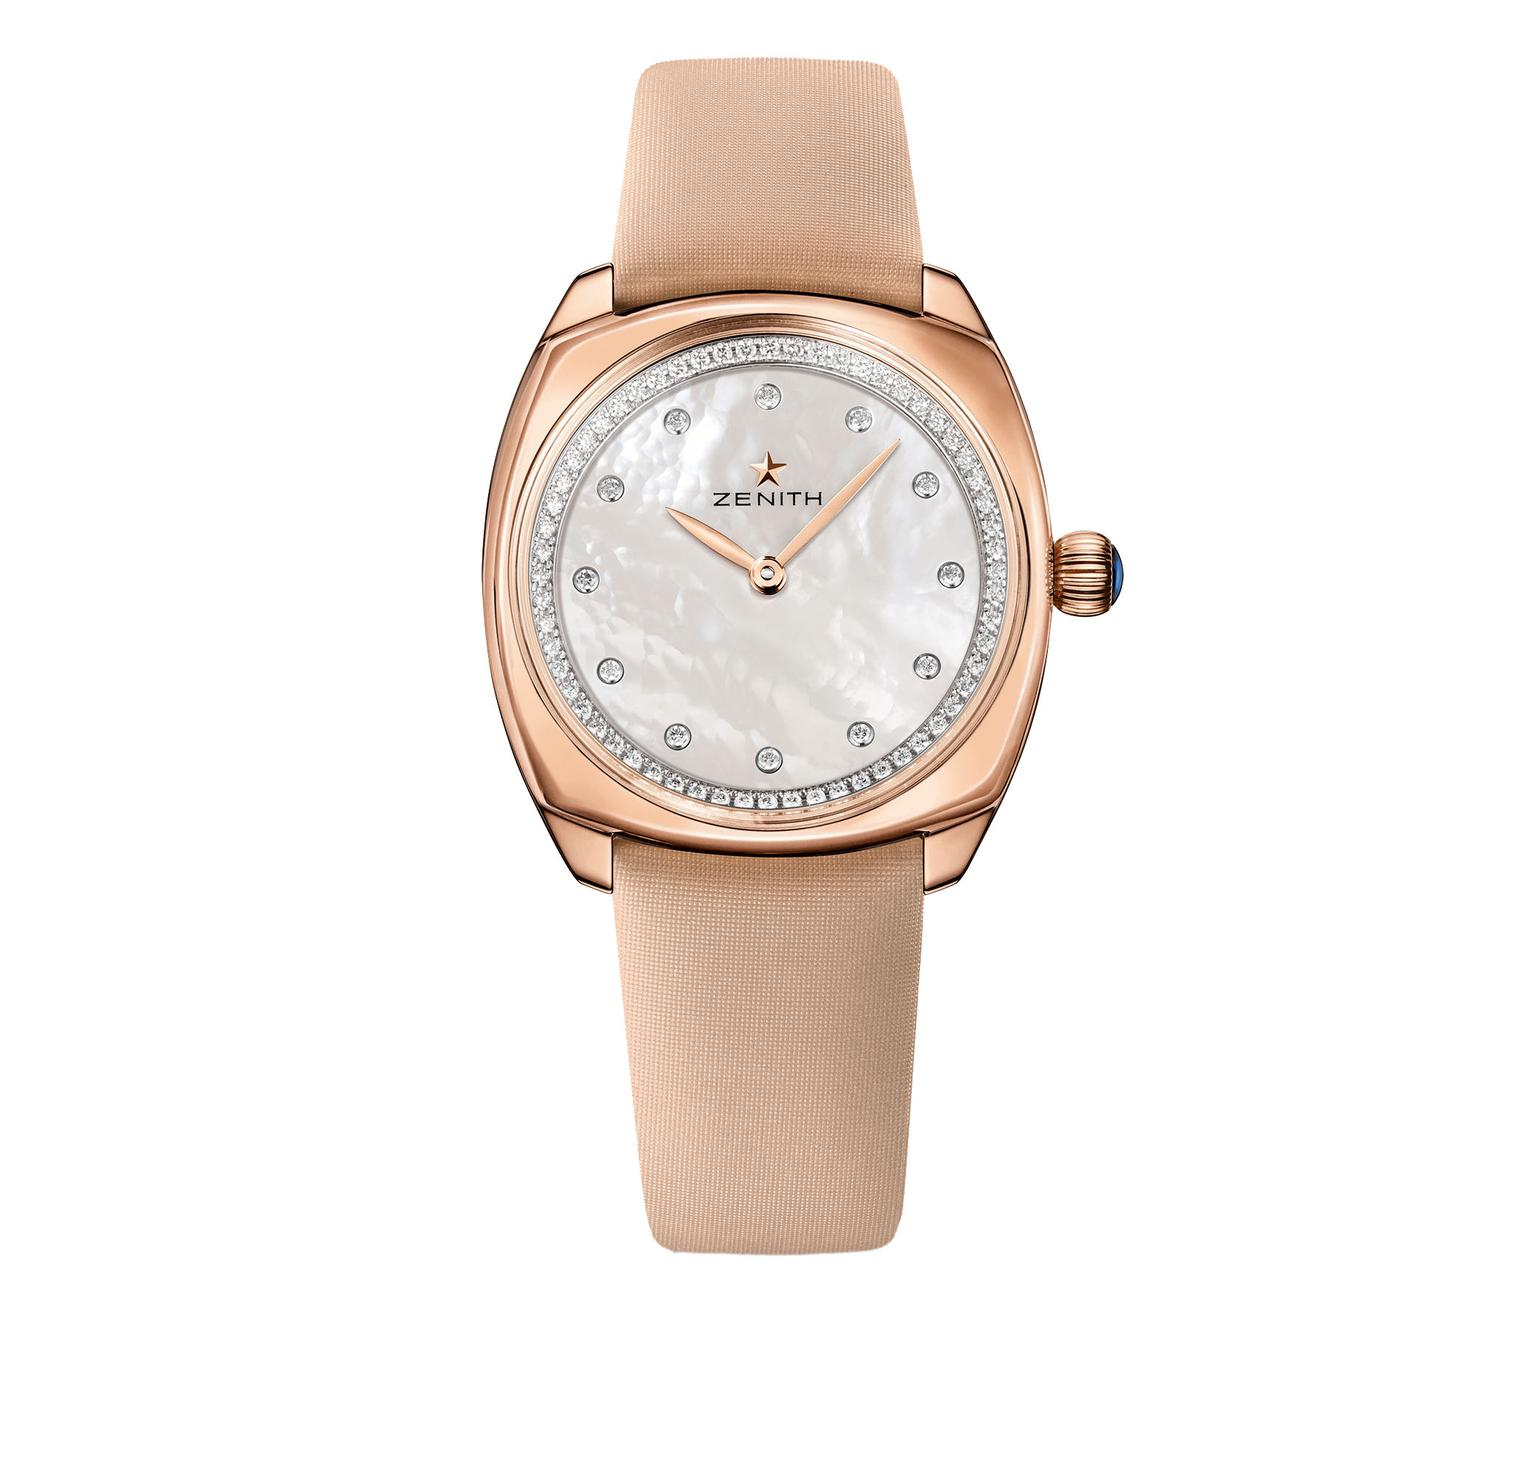 Zenith-Star-Rose-Gold-zoom